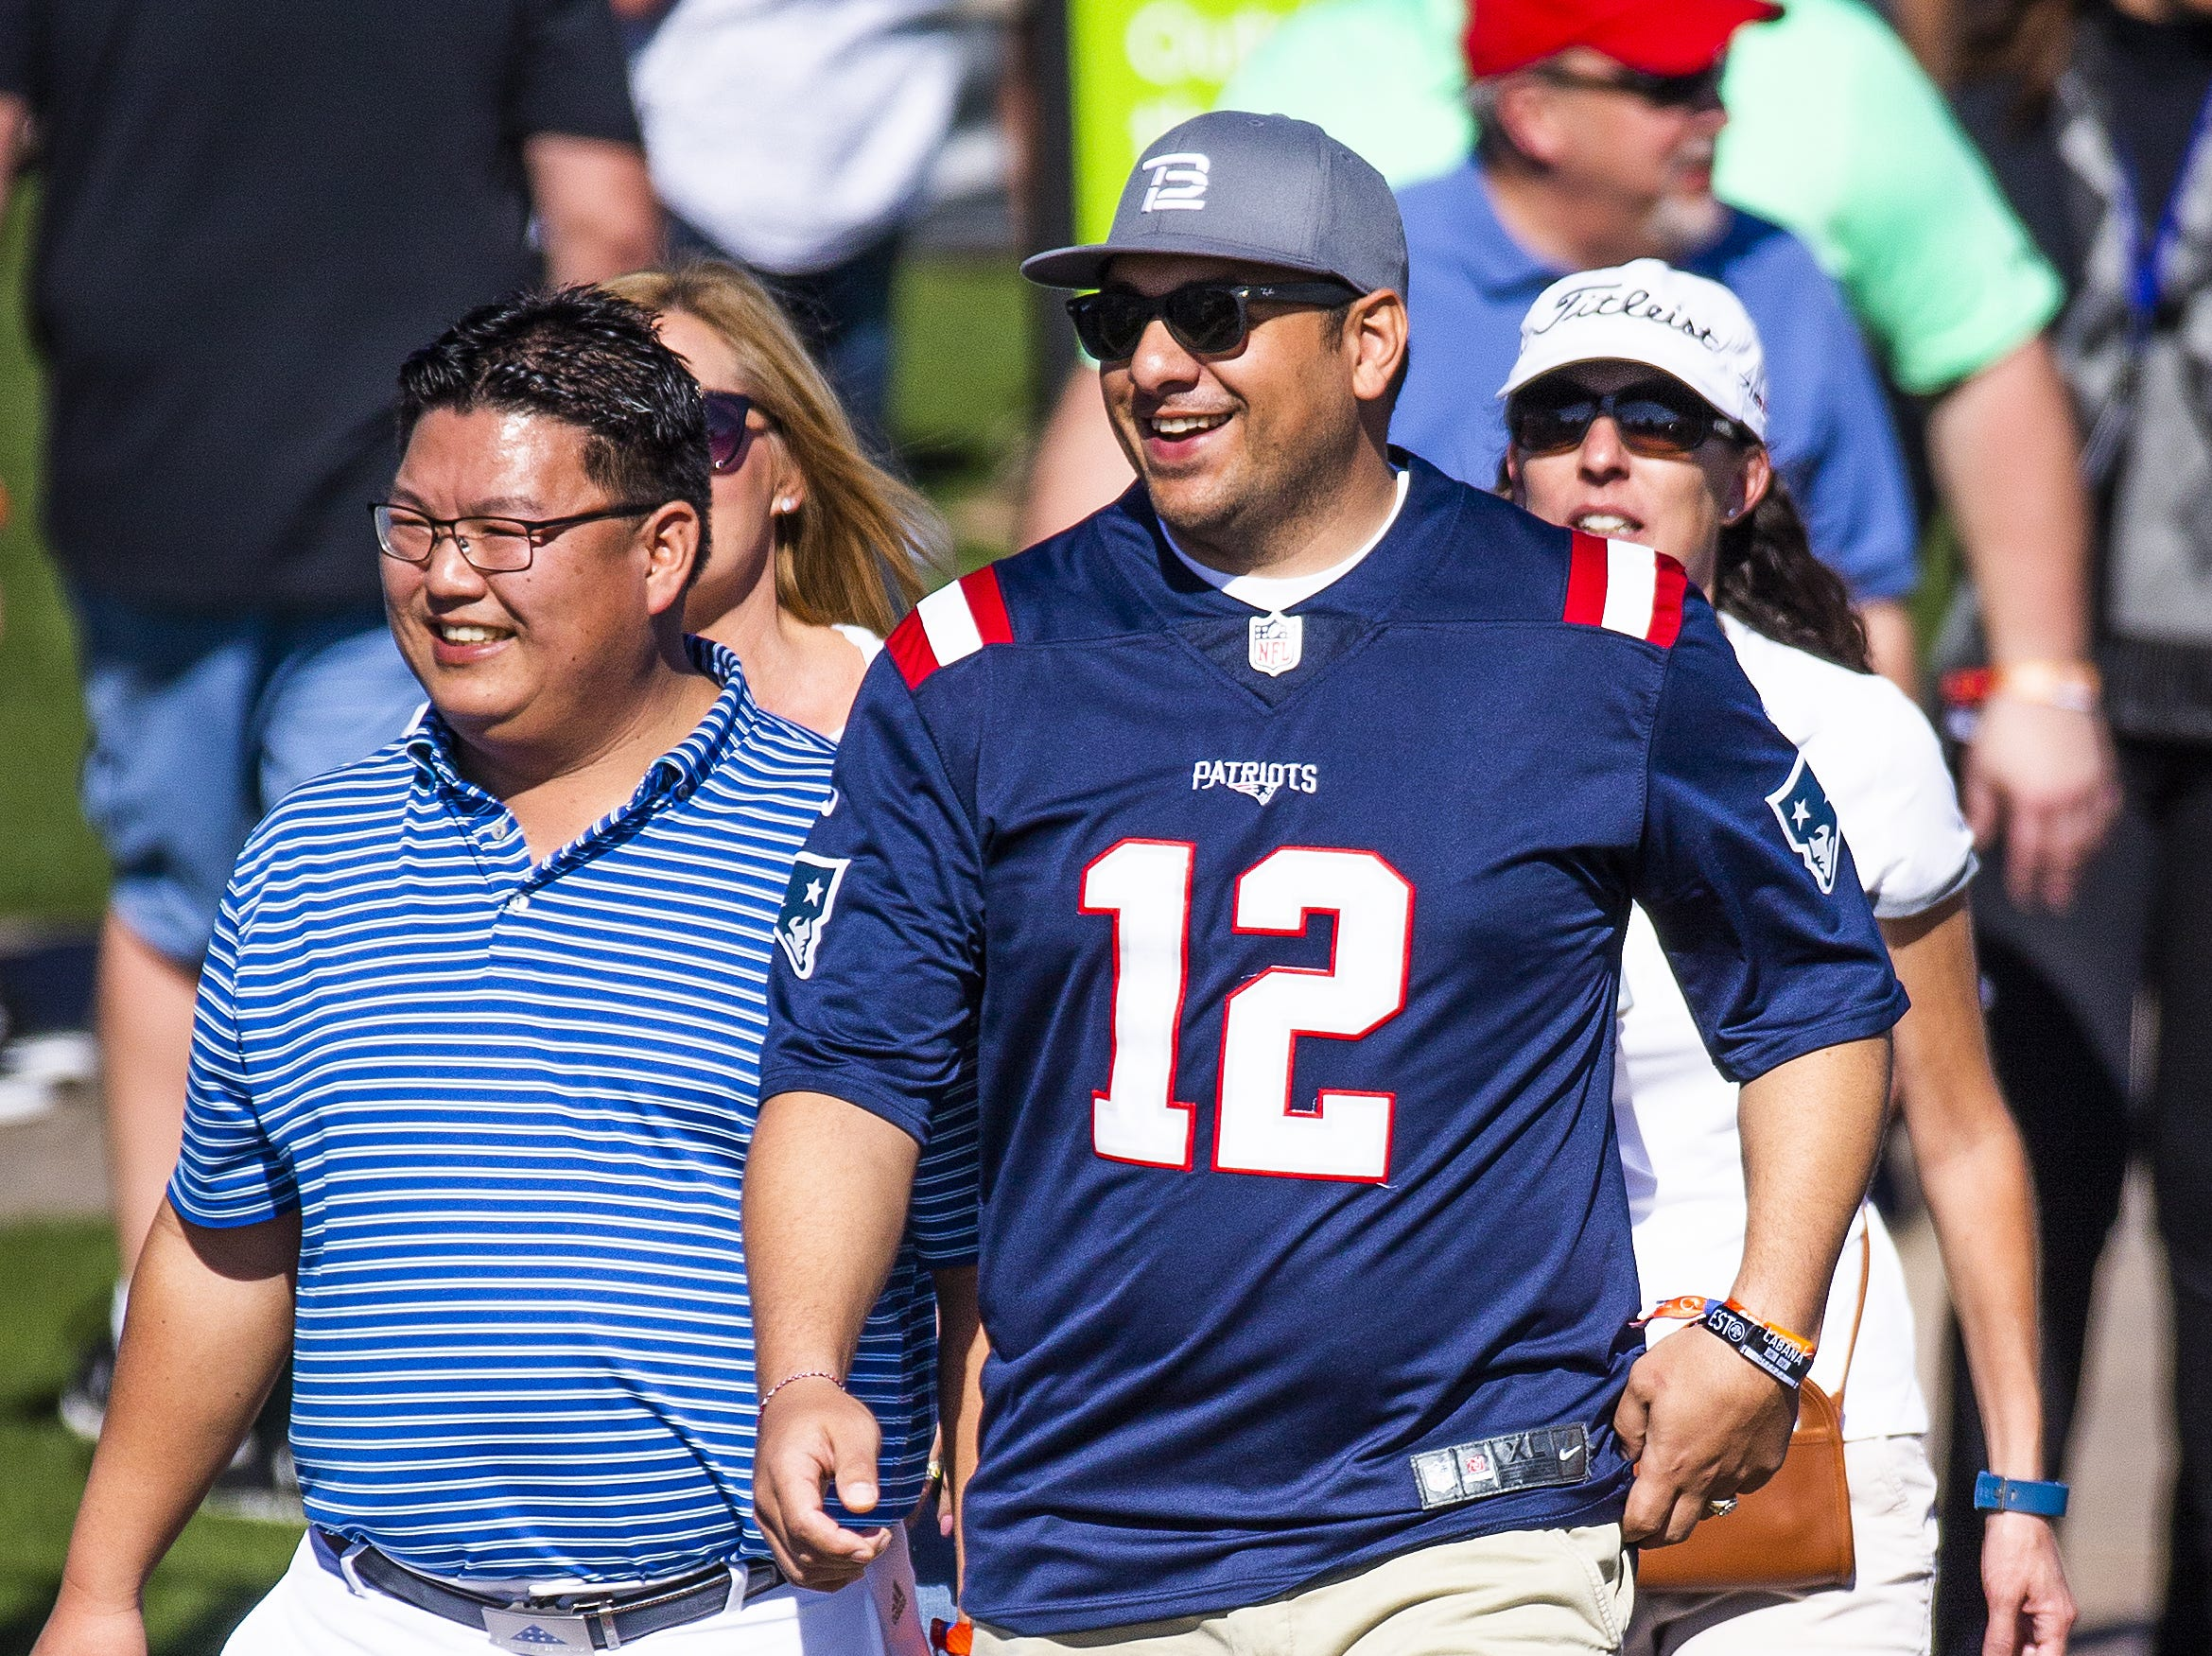 Damion Kindle, 35, Gilbert, proudly wears his New England Patriots Tom Brady jersey through the crowd during the second round of the Waste Management Phoenix Open at the TPC Scottsdale, Friday, February 1, 2019.